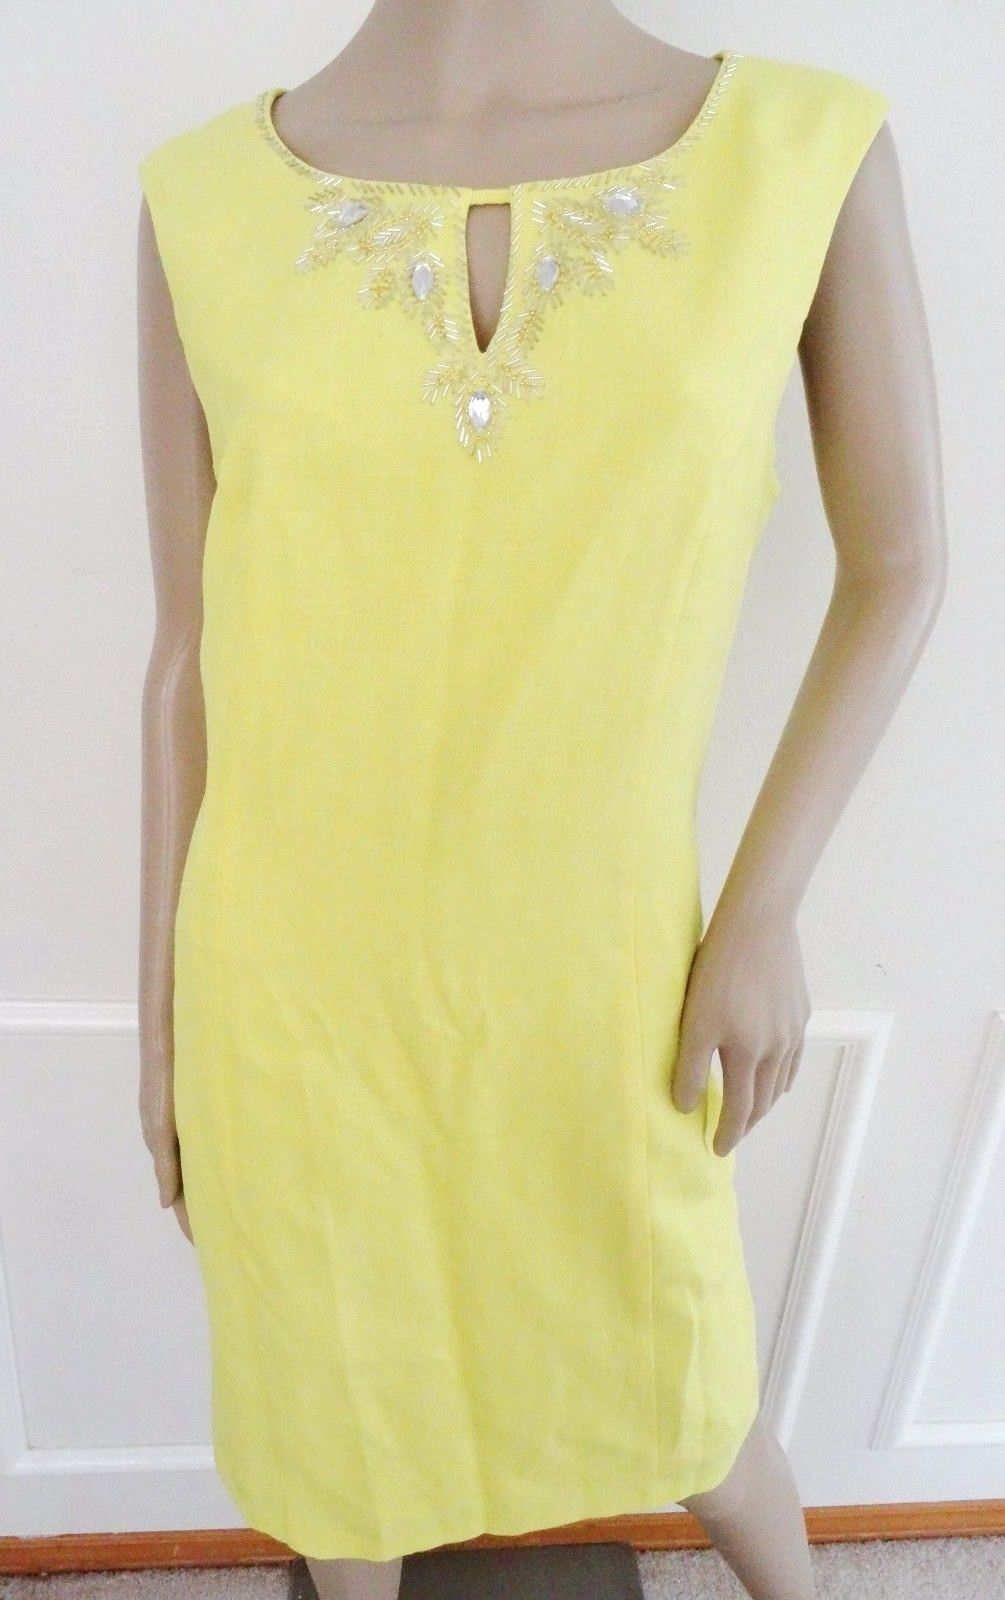 Nwt Ellen Tracy Beaded  Woven Sheath Cocktail Party Dress Sz 10 Yellow $118